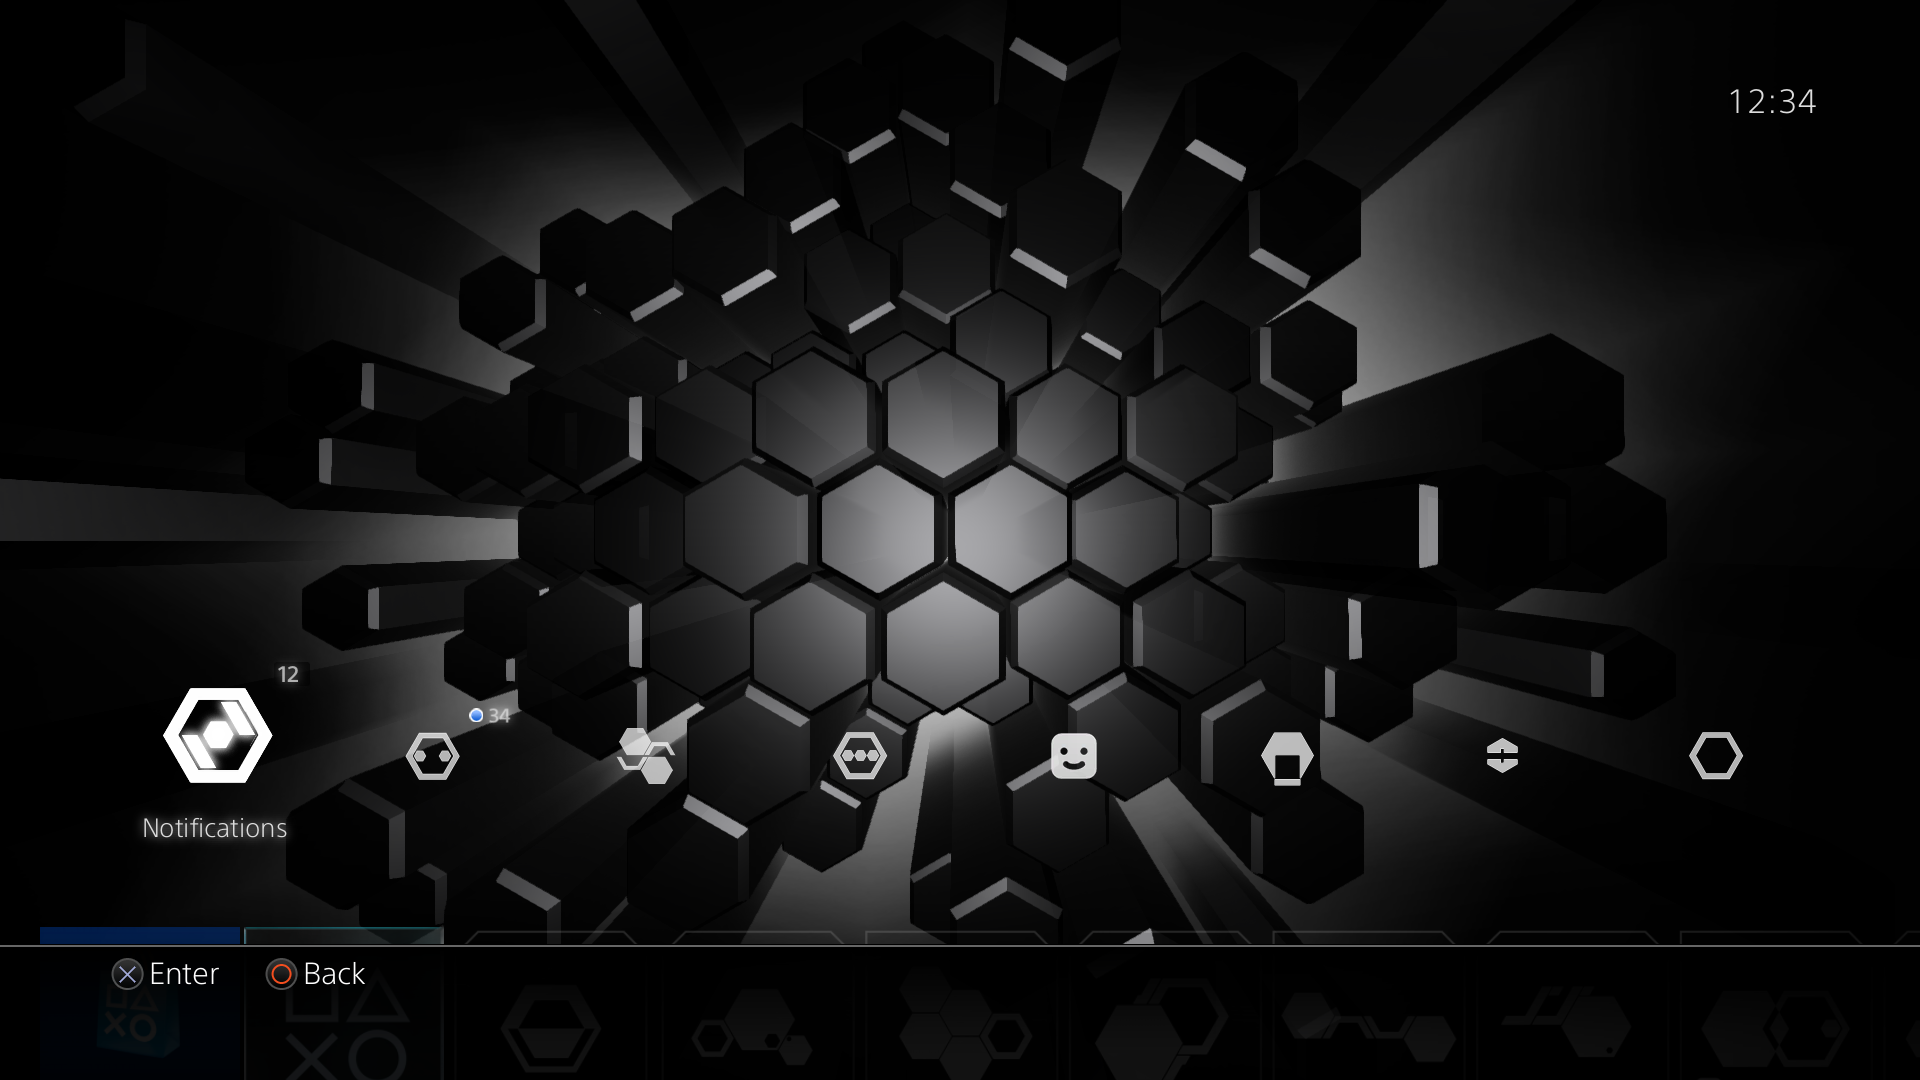 Meet Truant Pixel - The People Creating Custom PS4 Themes